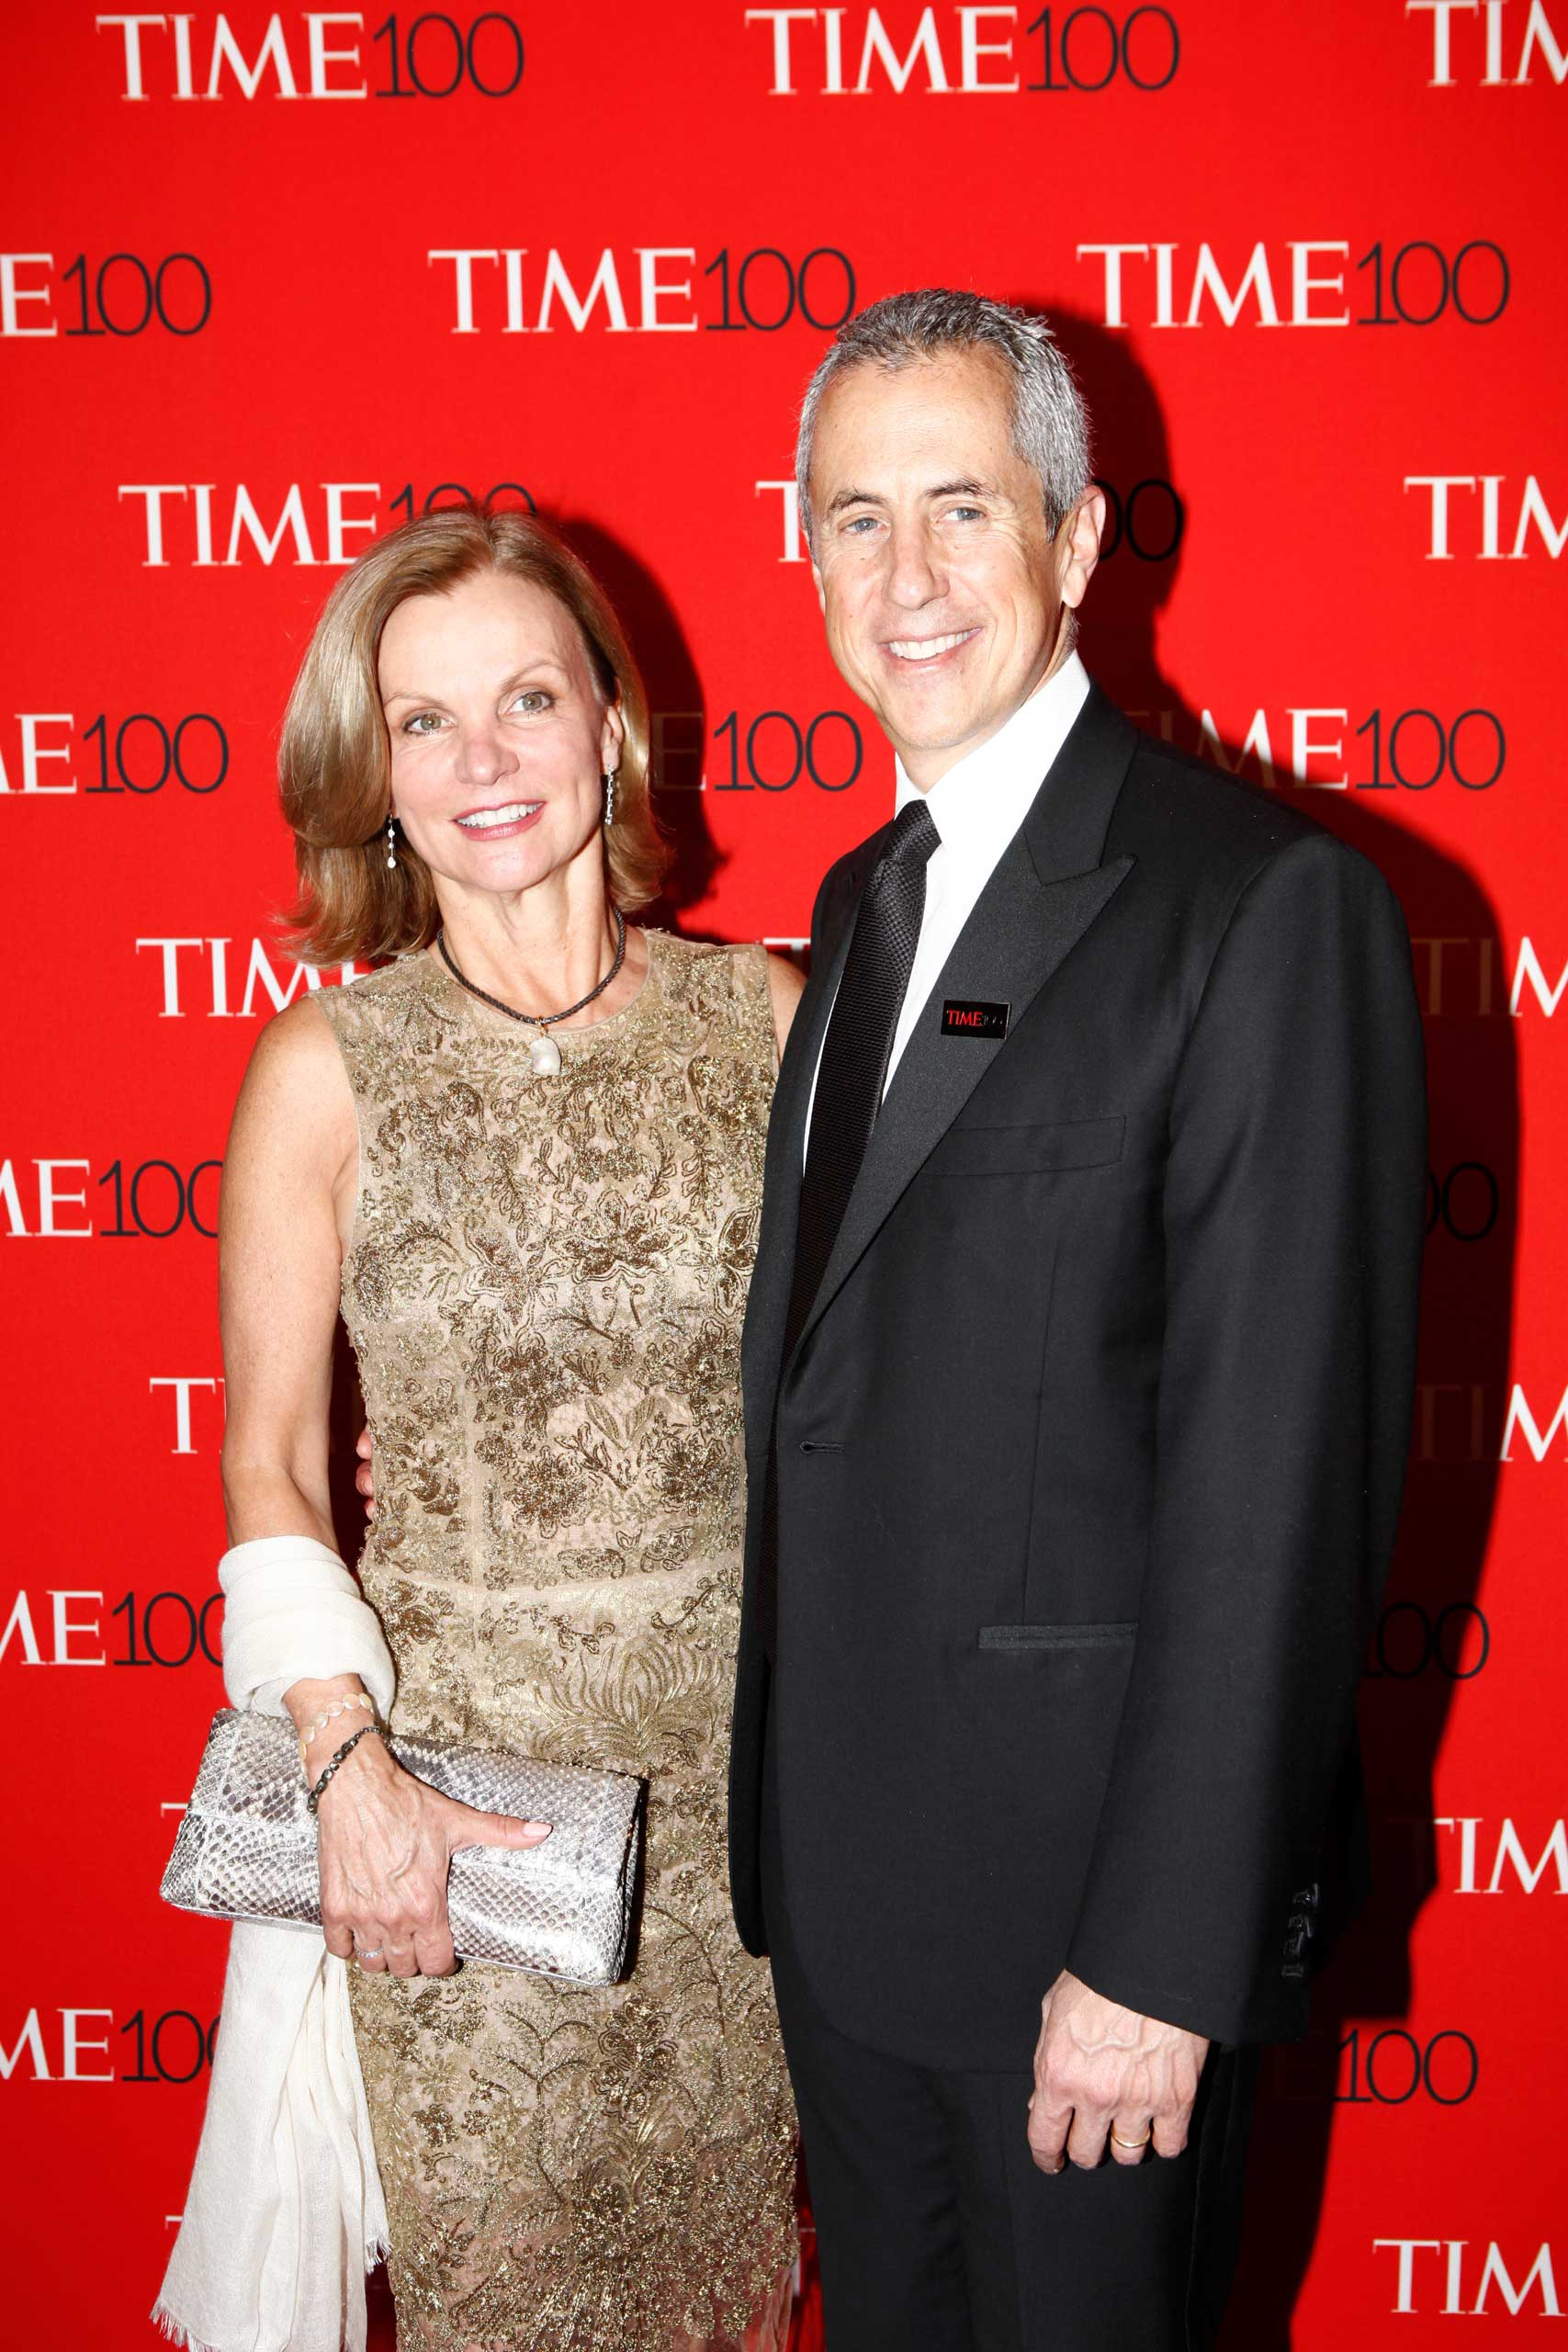 Danny Meyer and Audrey Meyer attend the TIME 100 Gala at Jazz at Lincoln Center in New York City on Apr. 21, 2015.